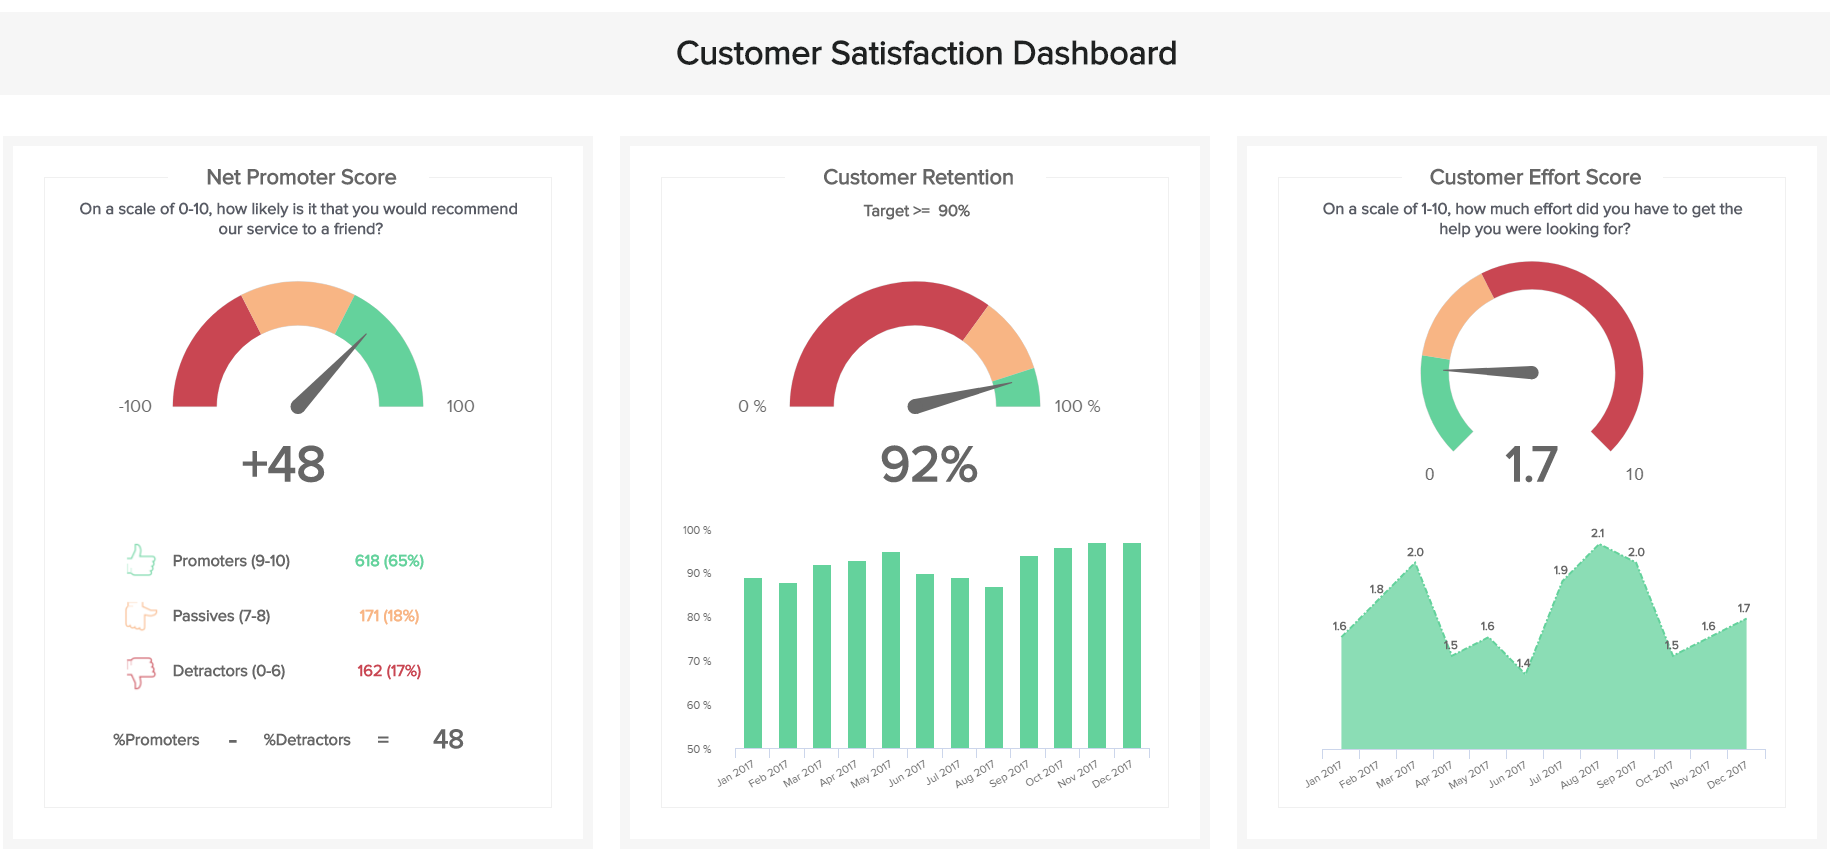 Customer satisfaction dashboard example that provides information on customer data management selected KPIs.